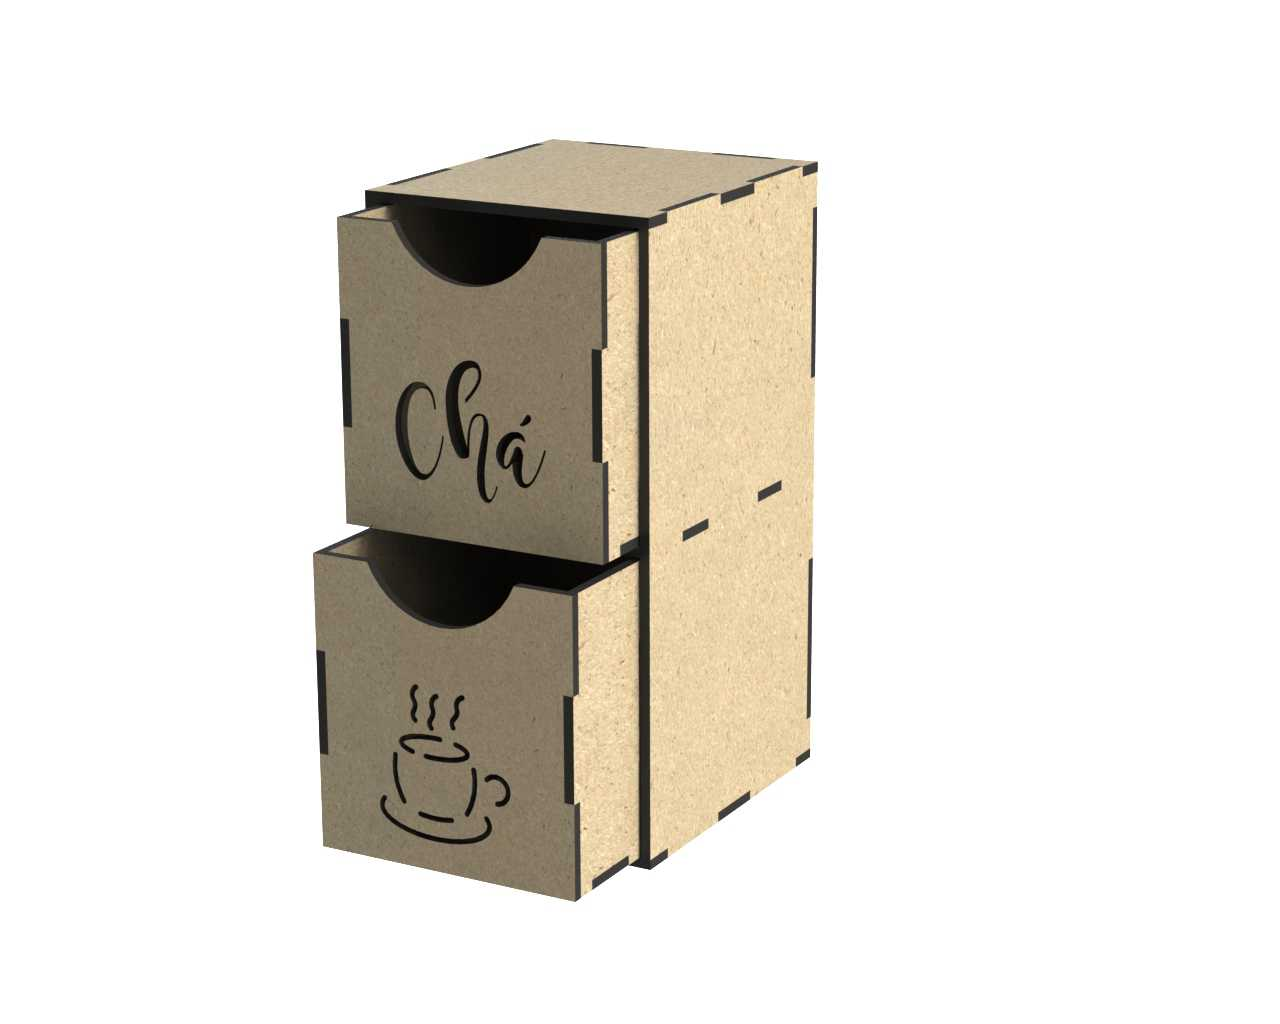 Laser Cut Tea Box With Drawers DXF File